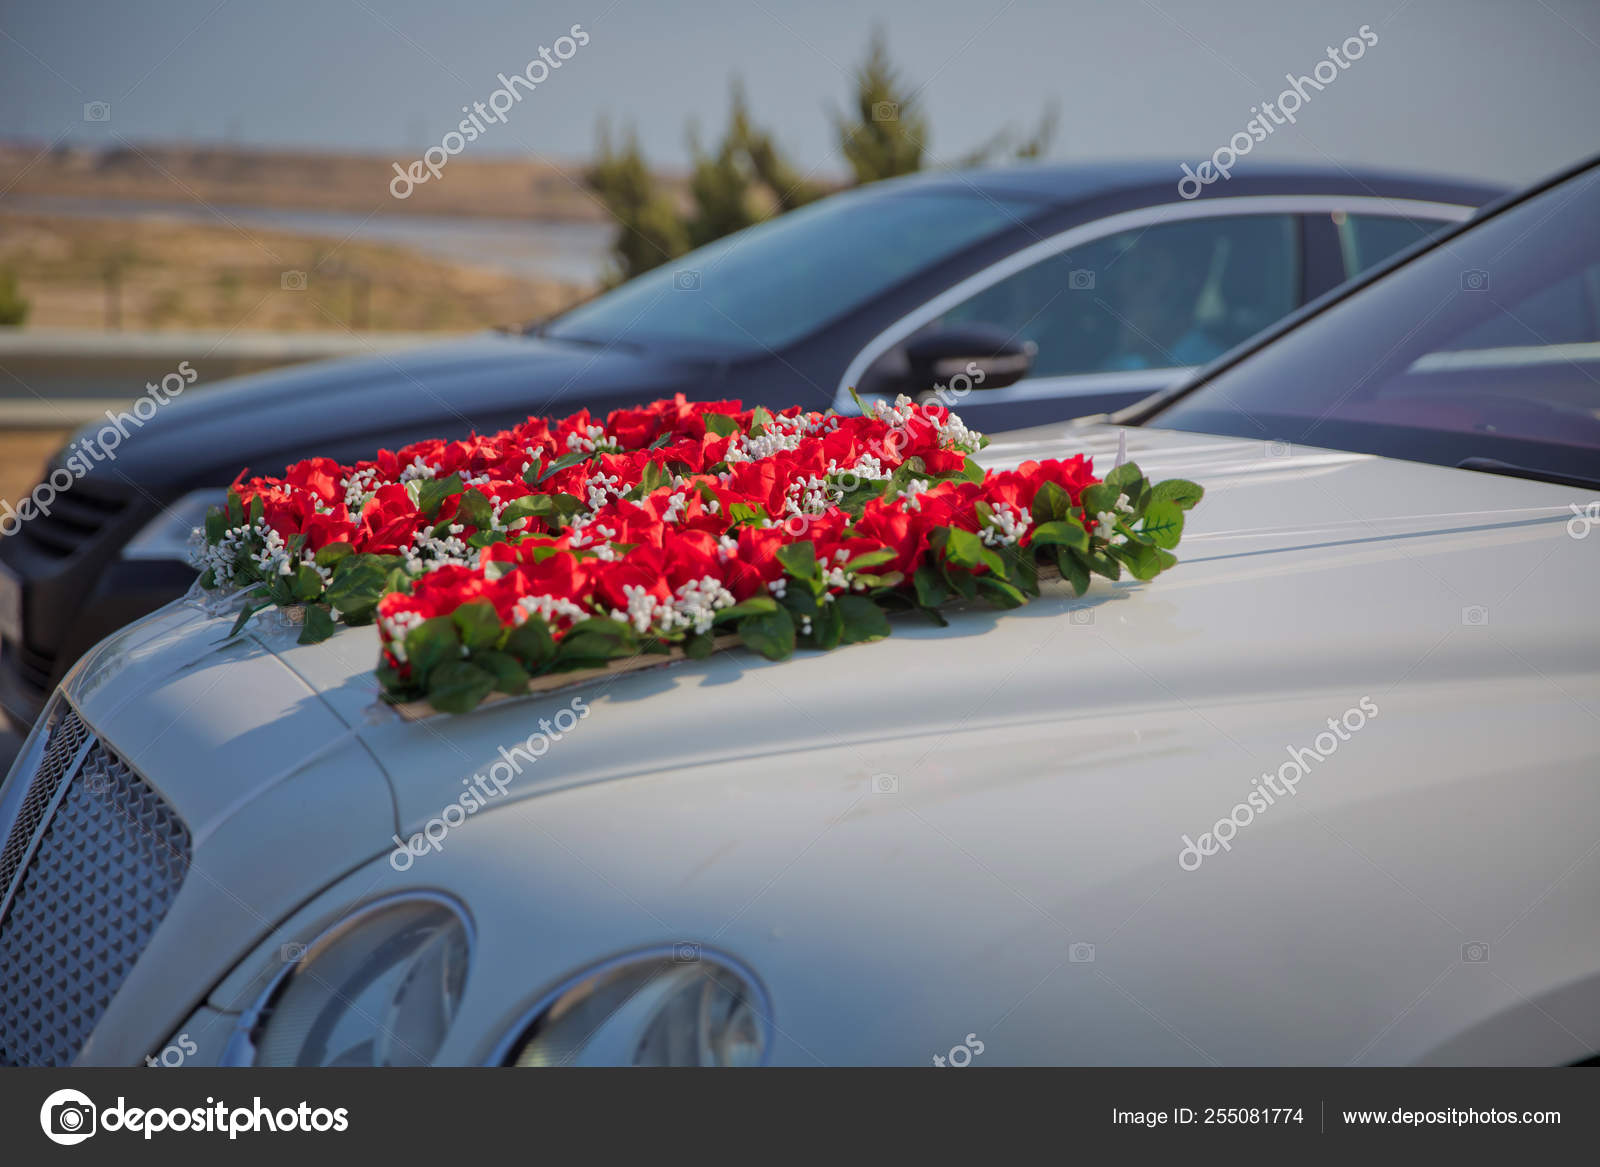 Closeup Image Of Wedding Car Decoration With Red And White Flowers Bouquet Stock Editorial Photo C Fotoqraf Tk Mail Ru 255081774